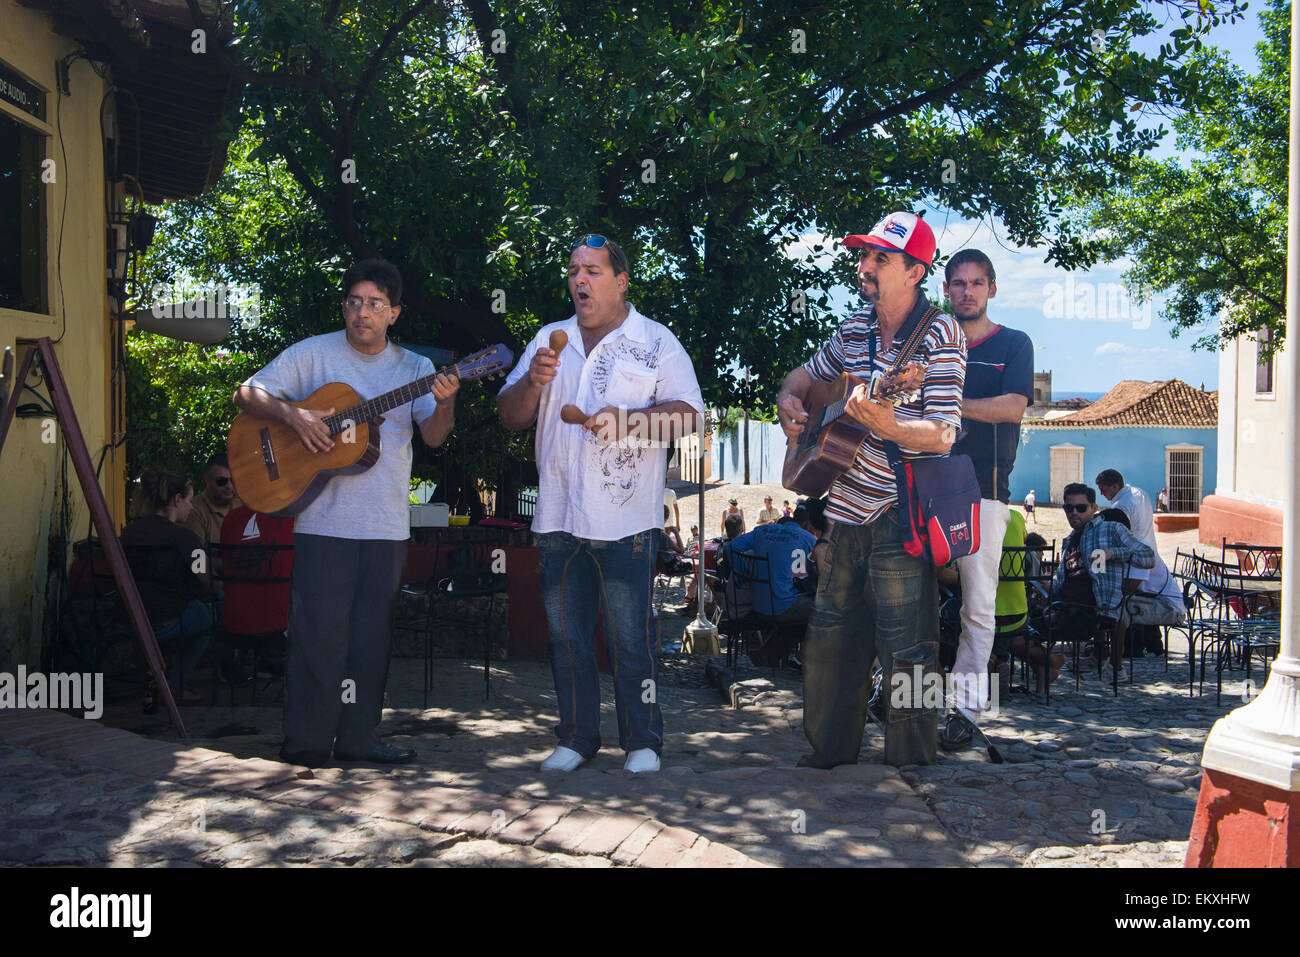 Cuba Trinidad Plaza Mayor area bar cafe musical group band busk buskers guitars singer outside by tree - Stock Image